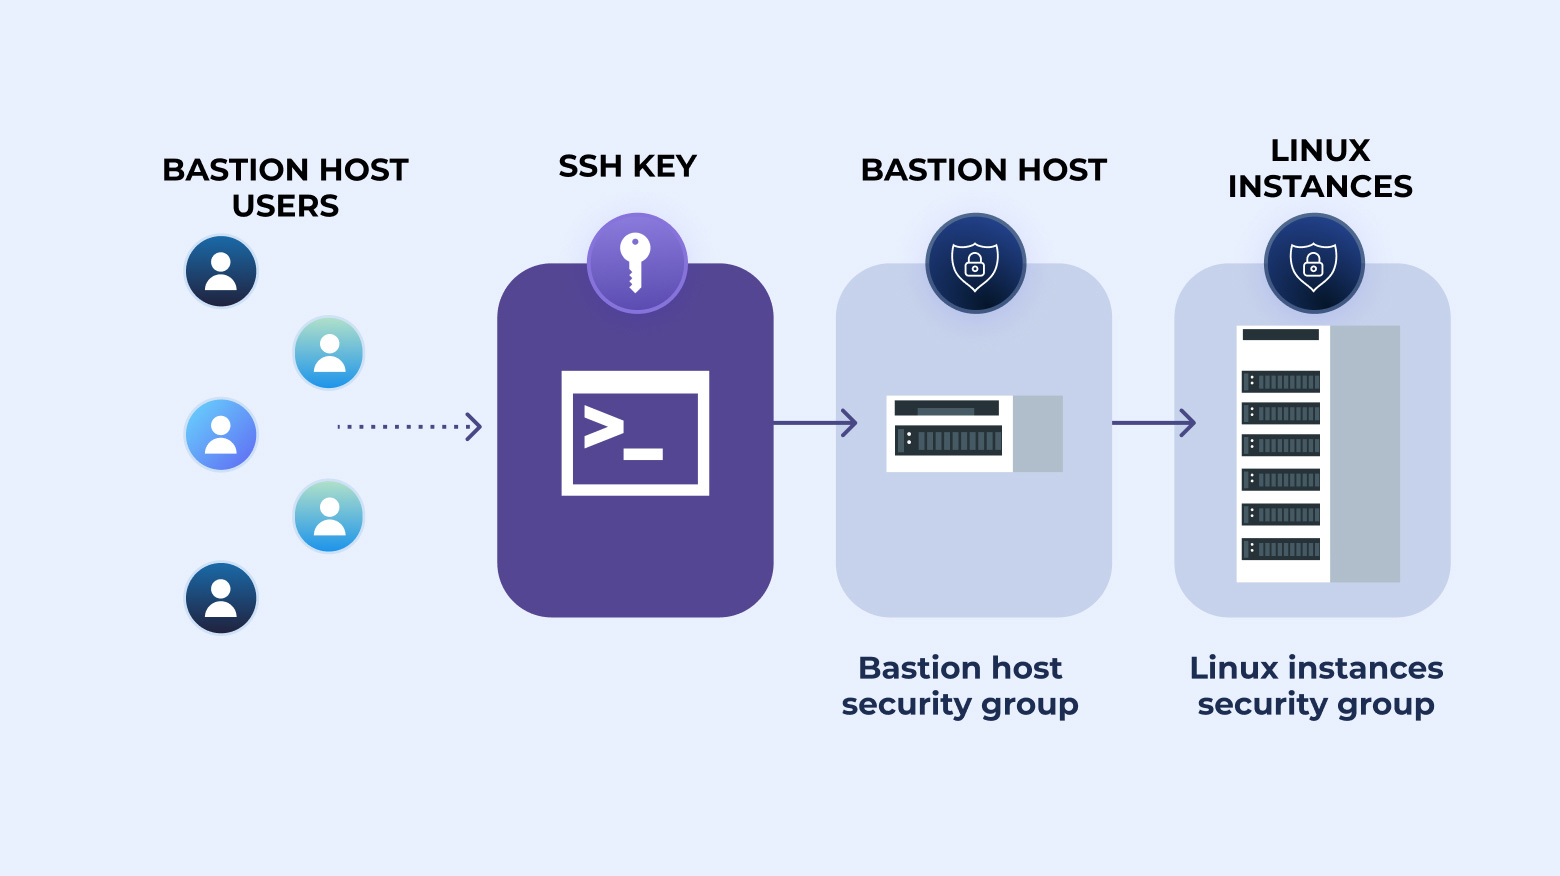 How to SSH Through Bastion With Key [Tutorial]